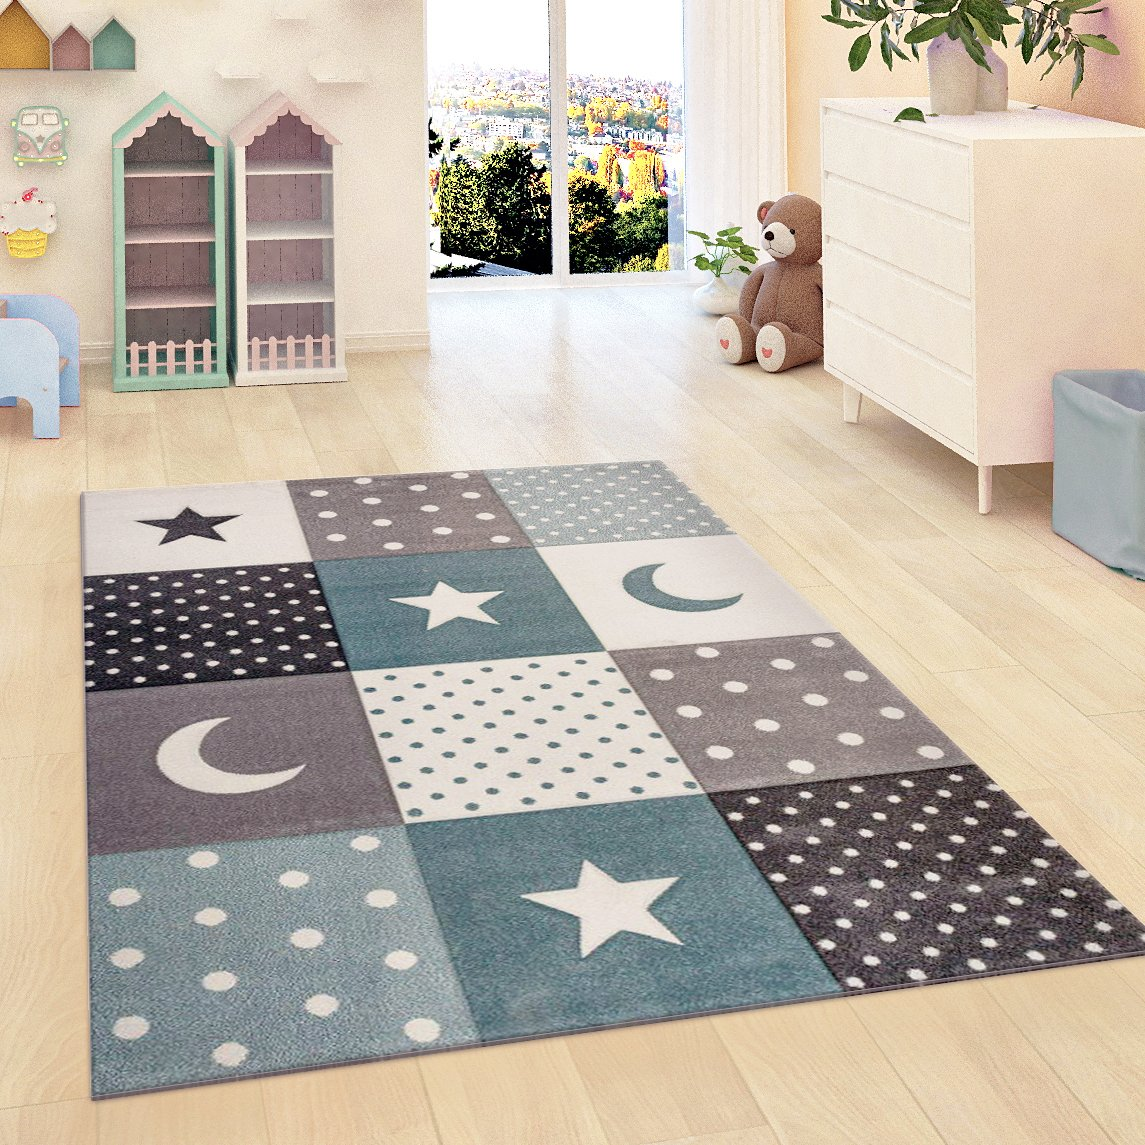 Children Rug Boys Bedroom Carpet Blue Grey Nursery Rugs Stars Soft Play Room Mat (80x150cm (2'6